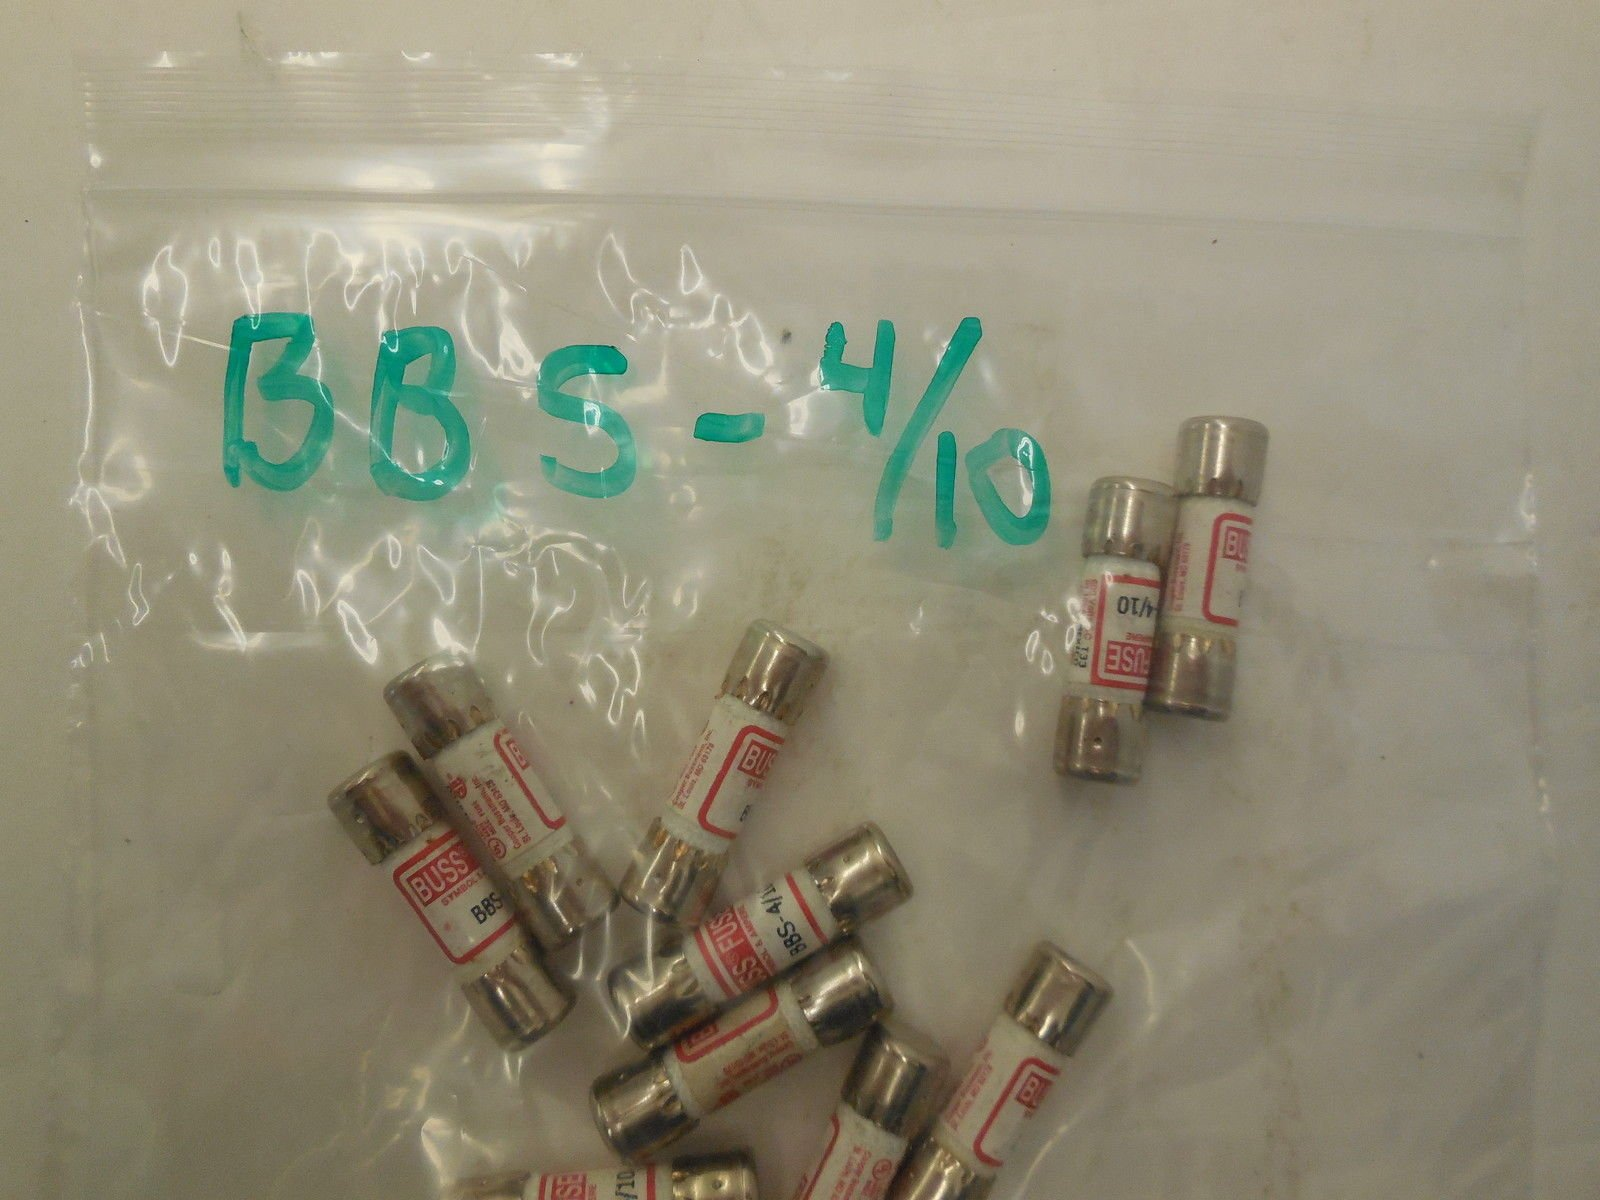 10 NEW FUSETRON BBS-4/10 FUSES BBS410 by Generic (Image #1)